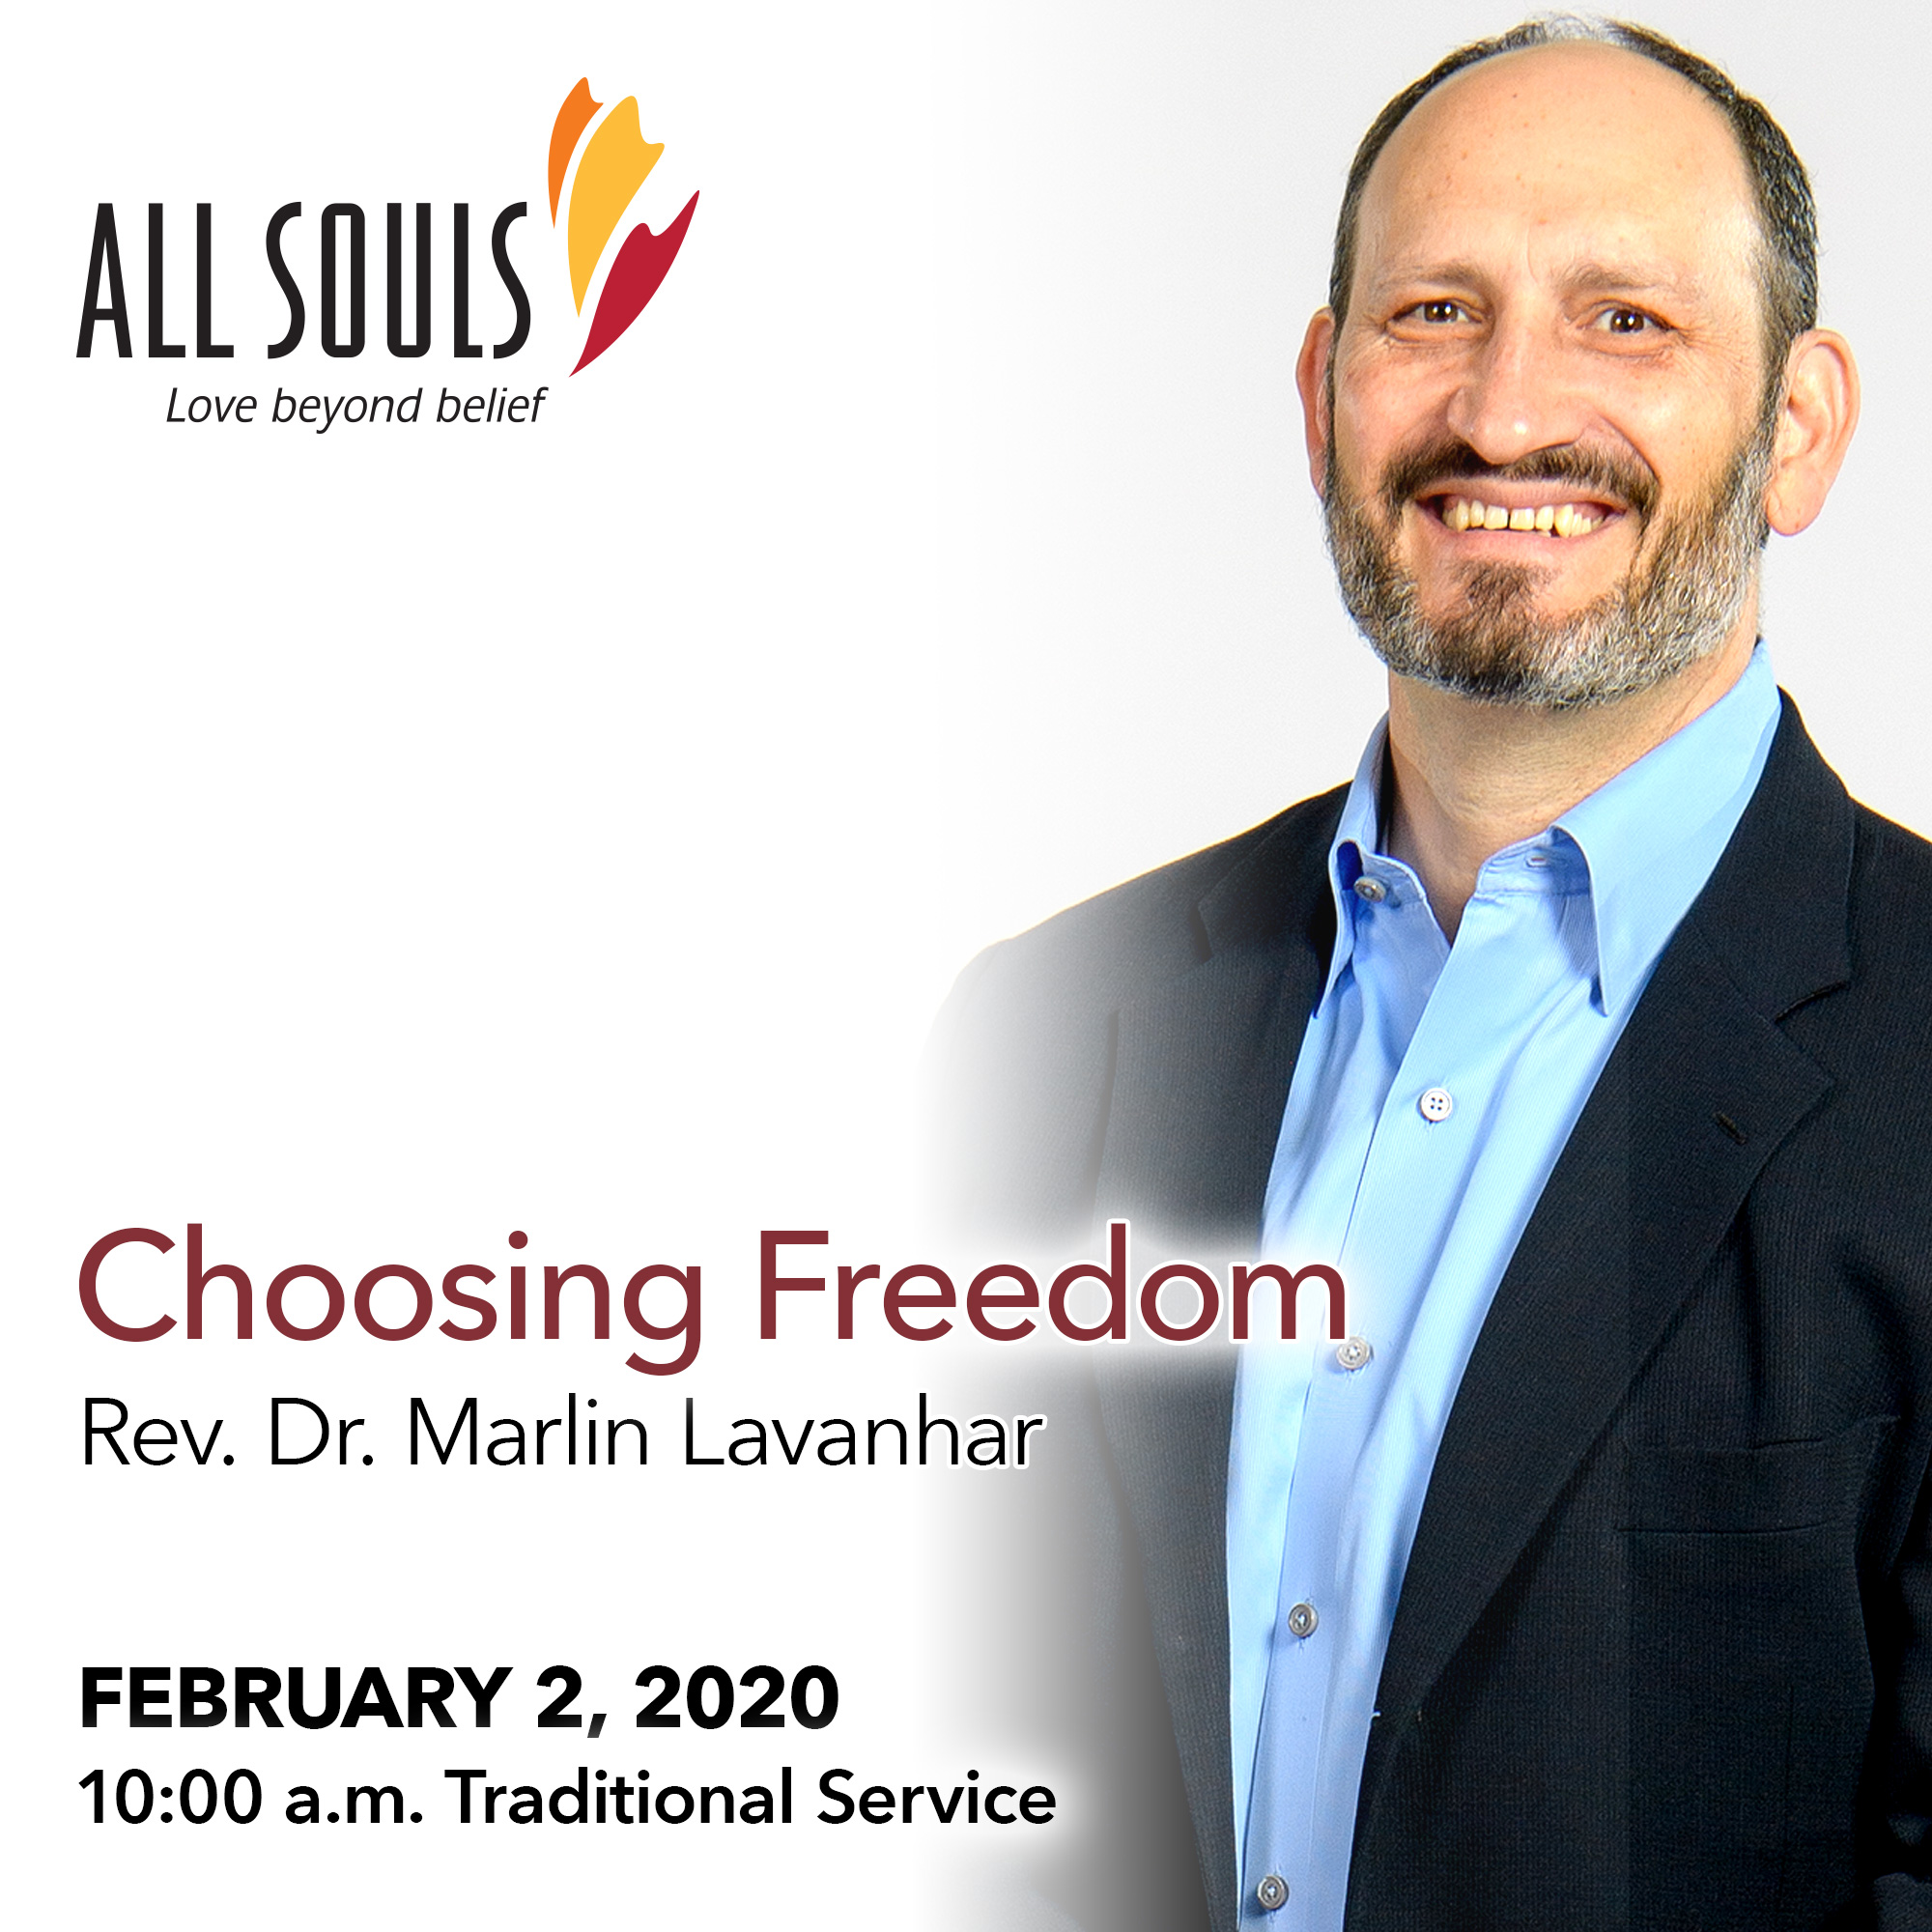 'CHOOSING FREEDOM' - A sermon by Rev. Dr. Marlin Lavanhar (Traditional Service) show art